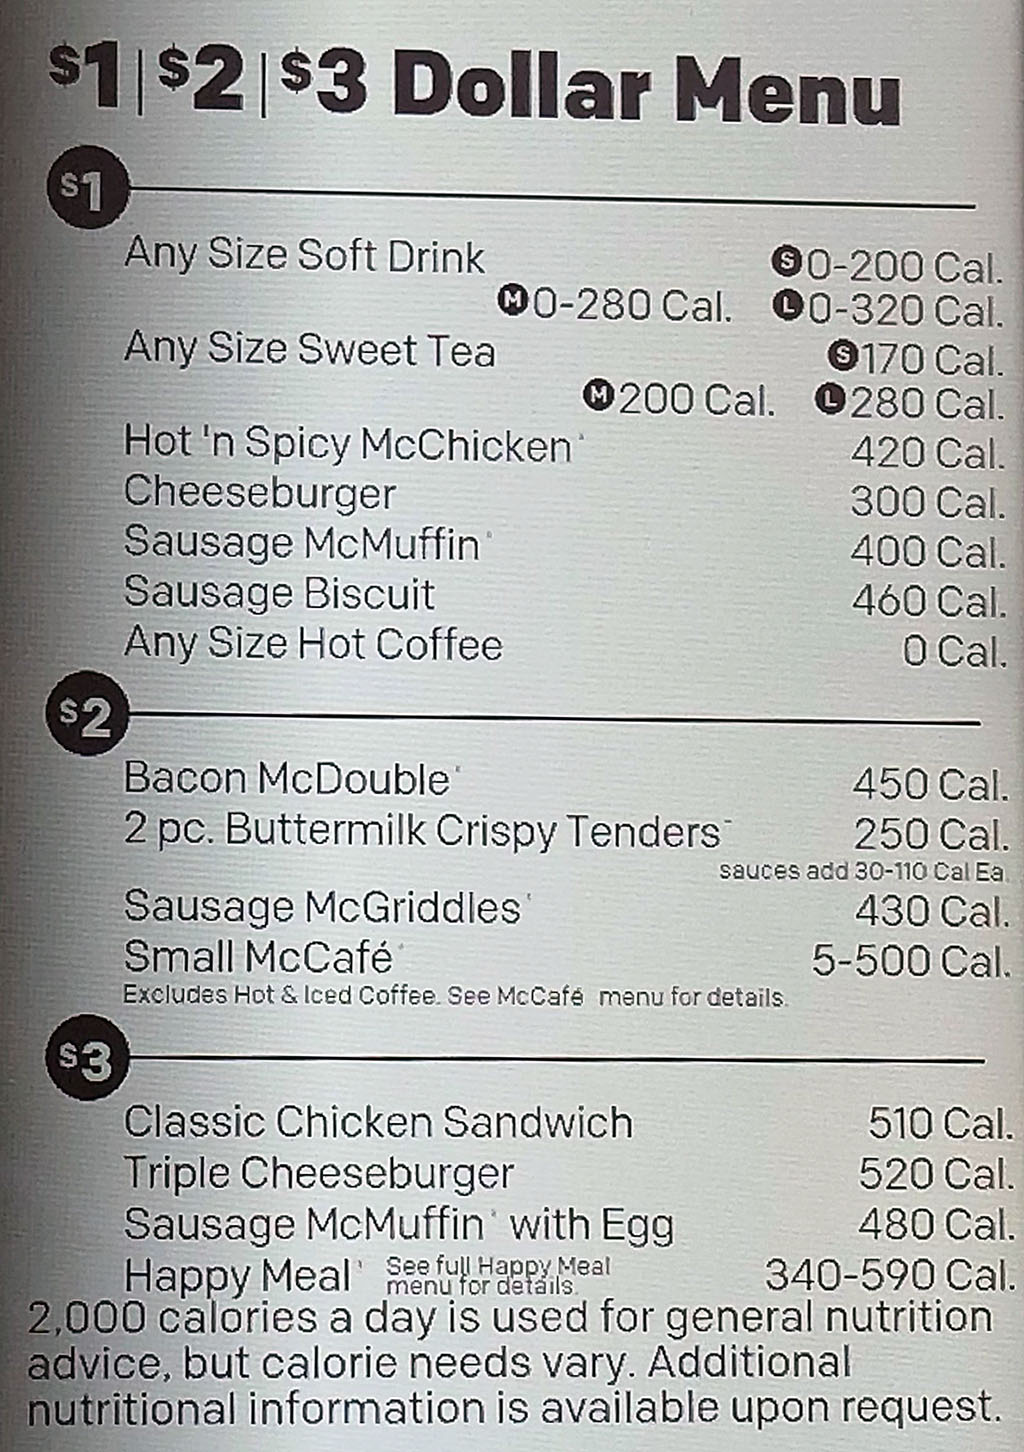 McDonalds's menu - dollar menu, value menu